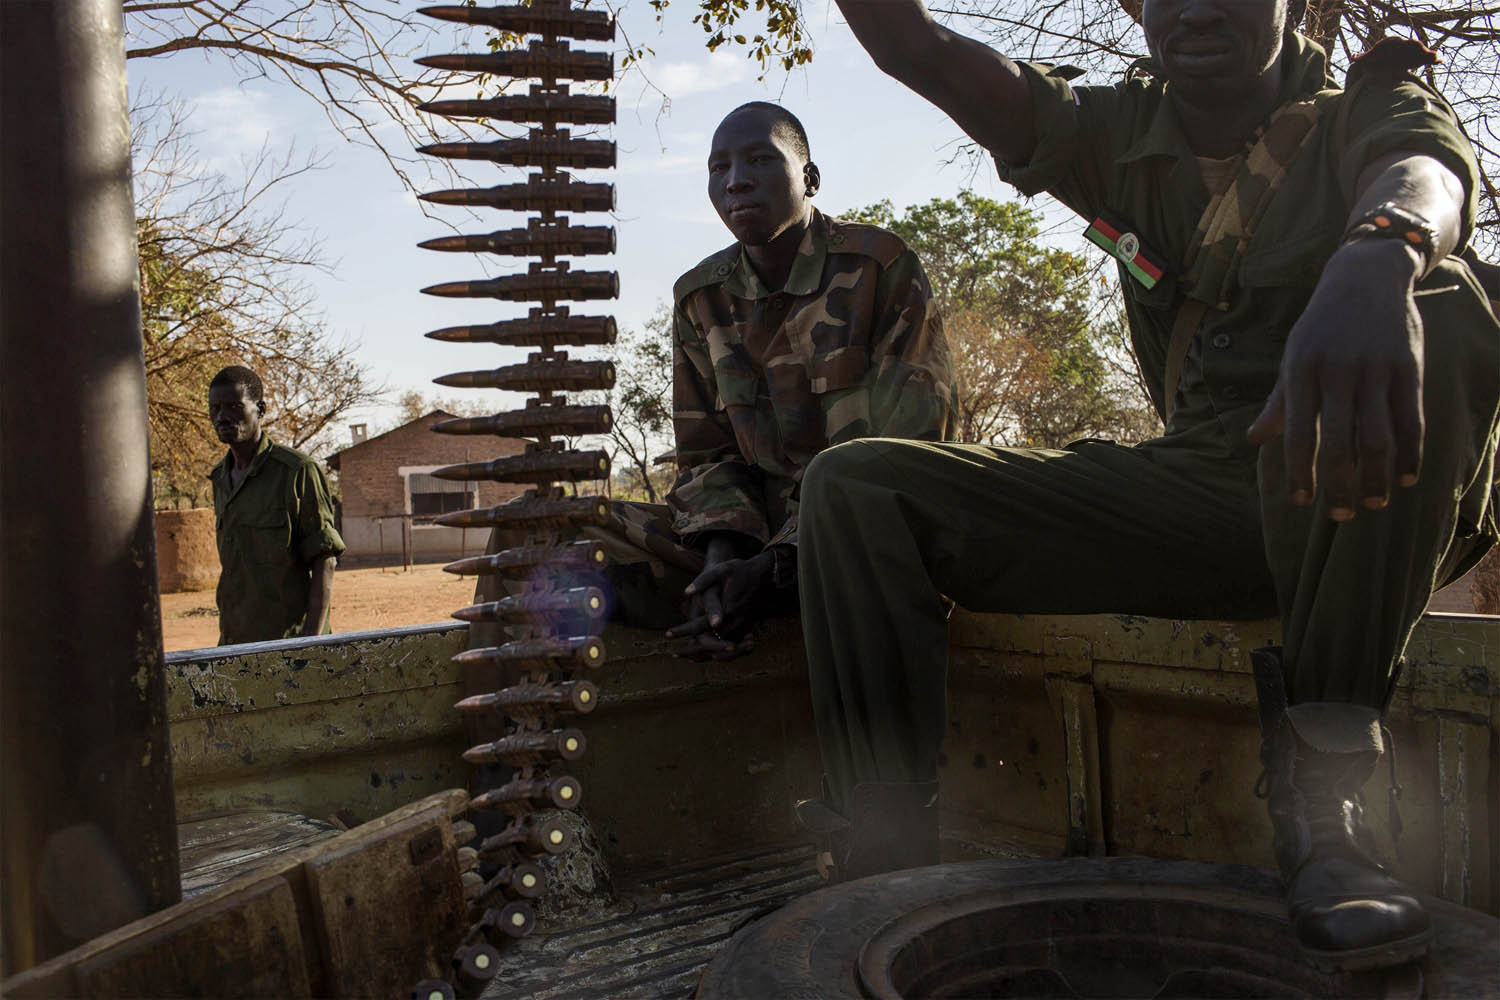 Feb. 14, 2014. Sudan People's Liberation Army (SPLA) government soldiers from the 2nd Brigade 6th Division sit on a truck with a heavy machine gun at the SPLA headquarters near Yirol, South Sudan,